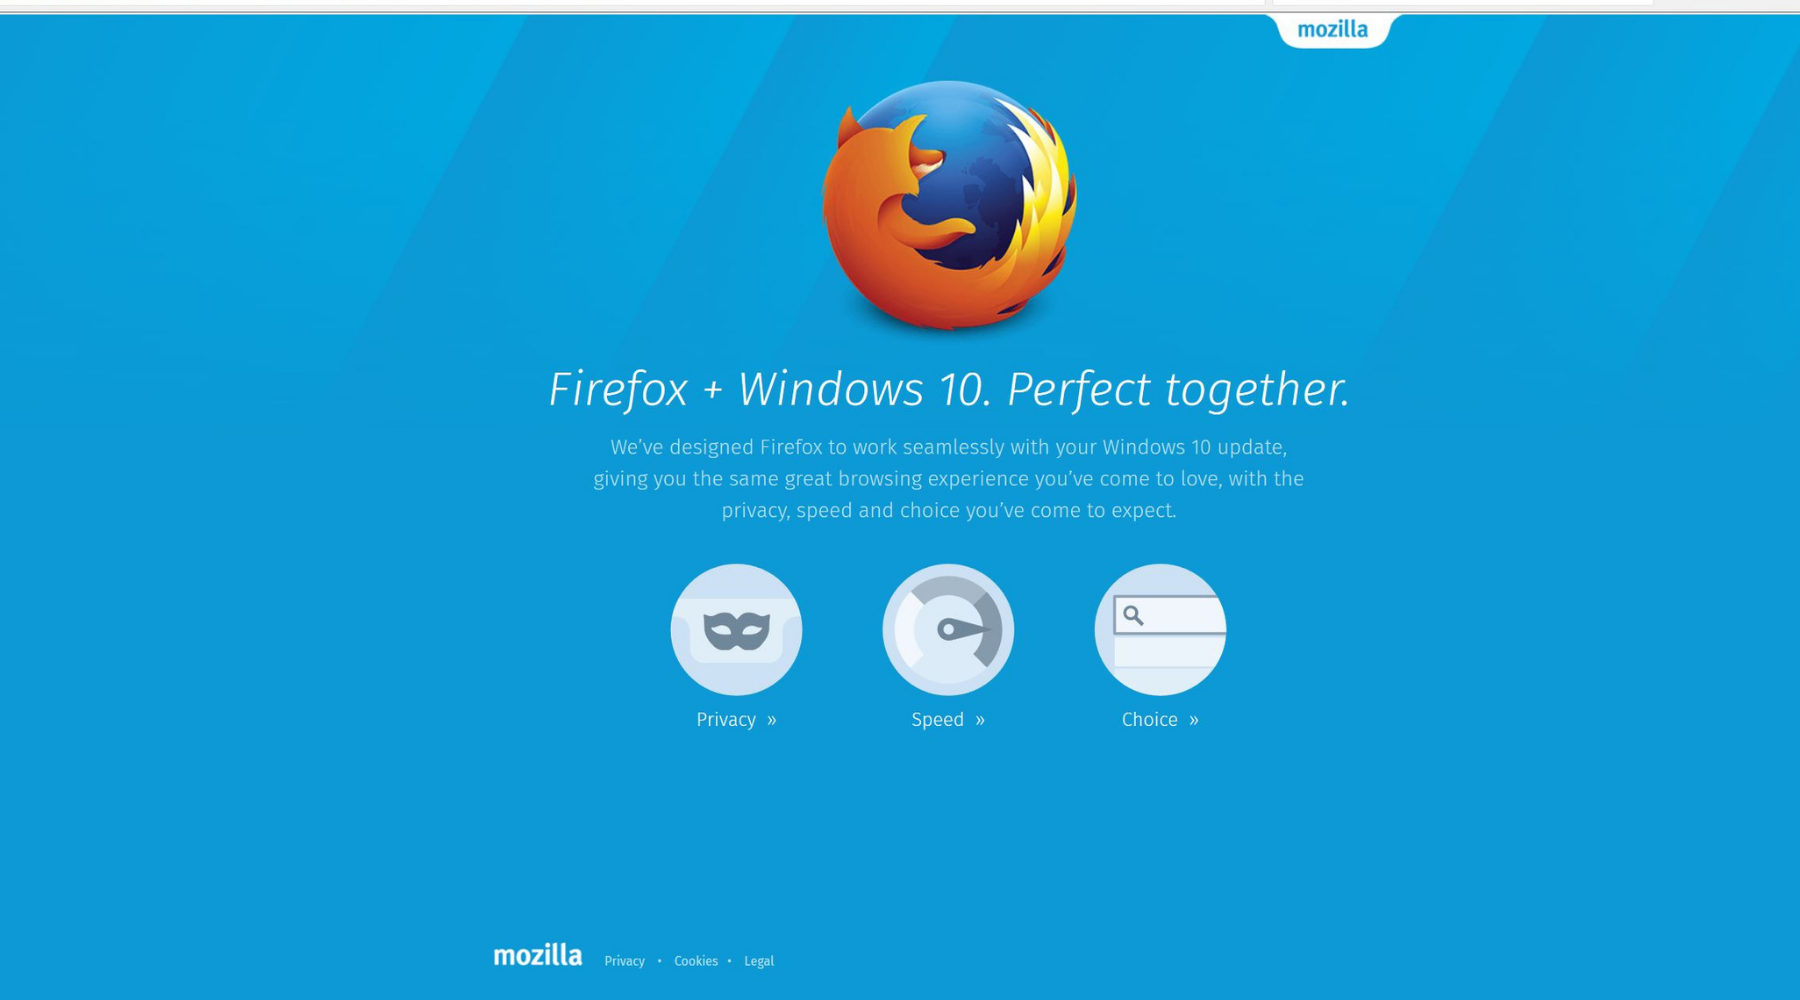 NEW List of Mozilla Blogs and Sites that Allow Guest Blogging wallpaper